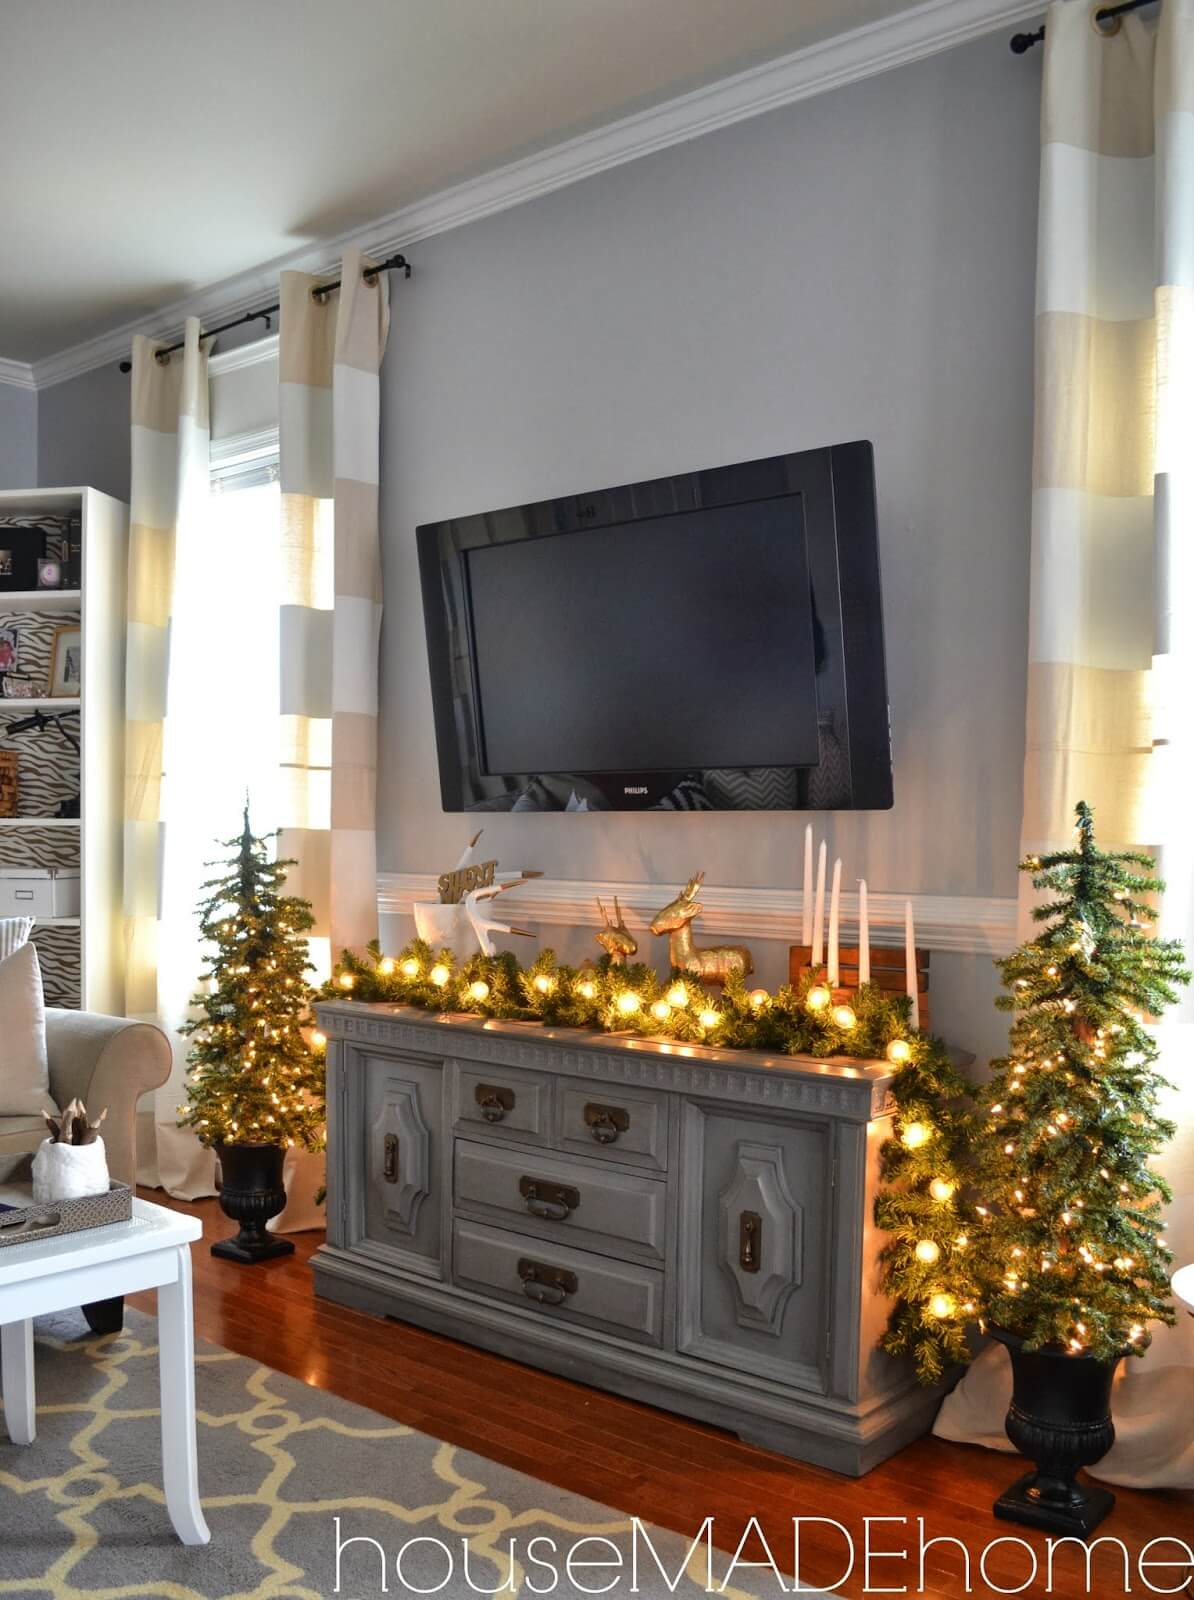 Mini Tree and Mantle Light Display